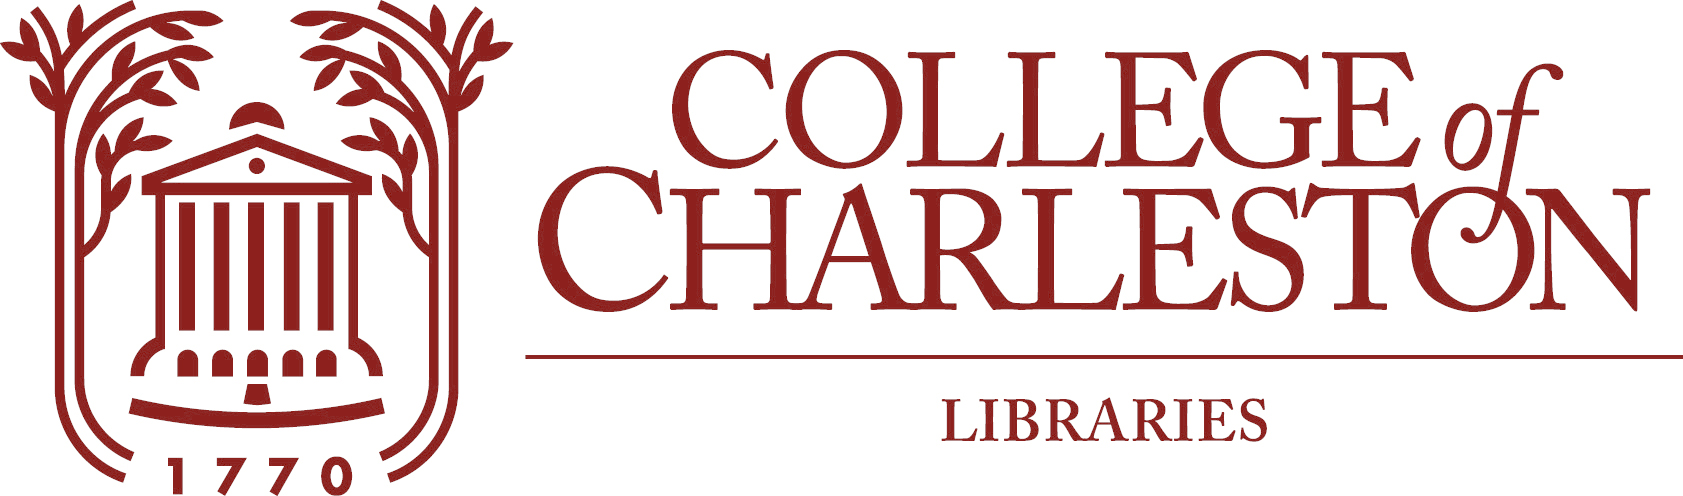 College of Charleston Libraries Logo